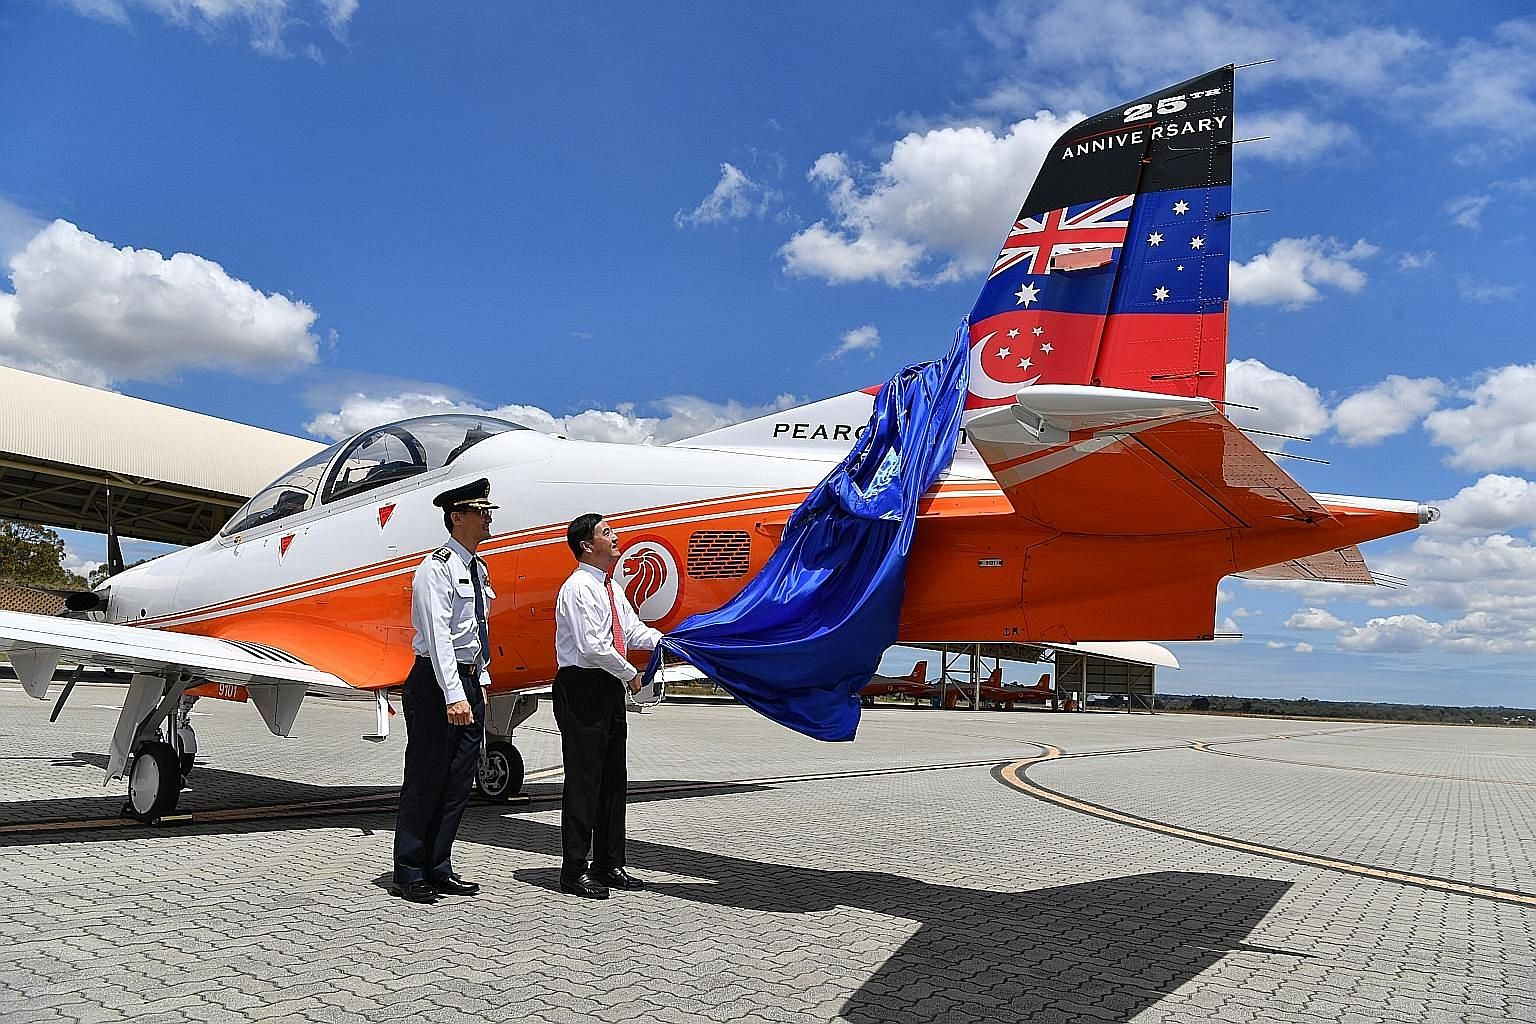 Senior Minister of State for Defence Heng Chee How unveiling the commemorative tail flash on a PC-21 plane at RSAF's 25th anniversary celebration of its training at Base Pearce in Australia yesterday, as commander of the RSAF's Air Force Training Com